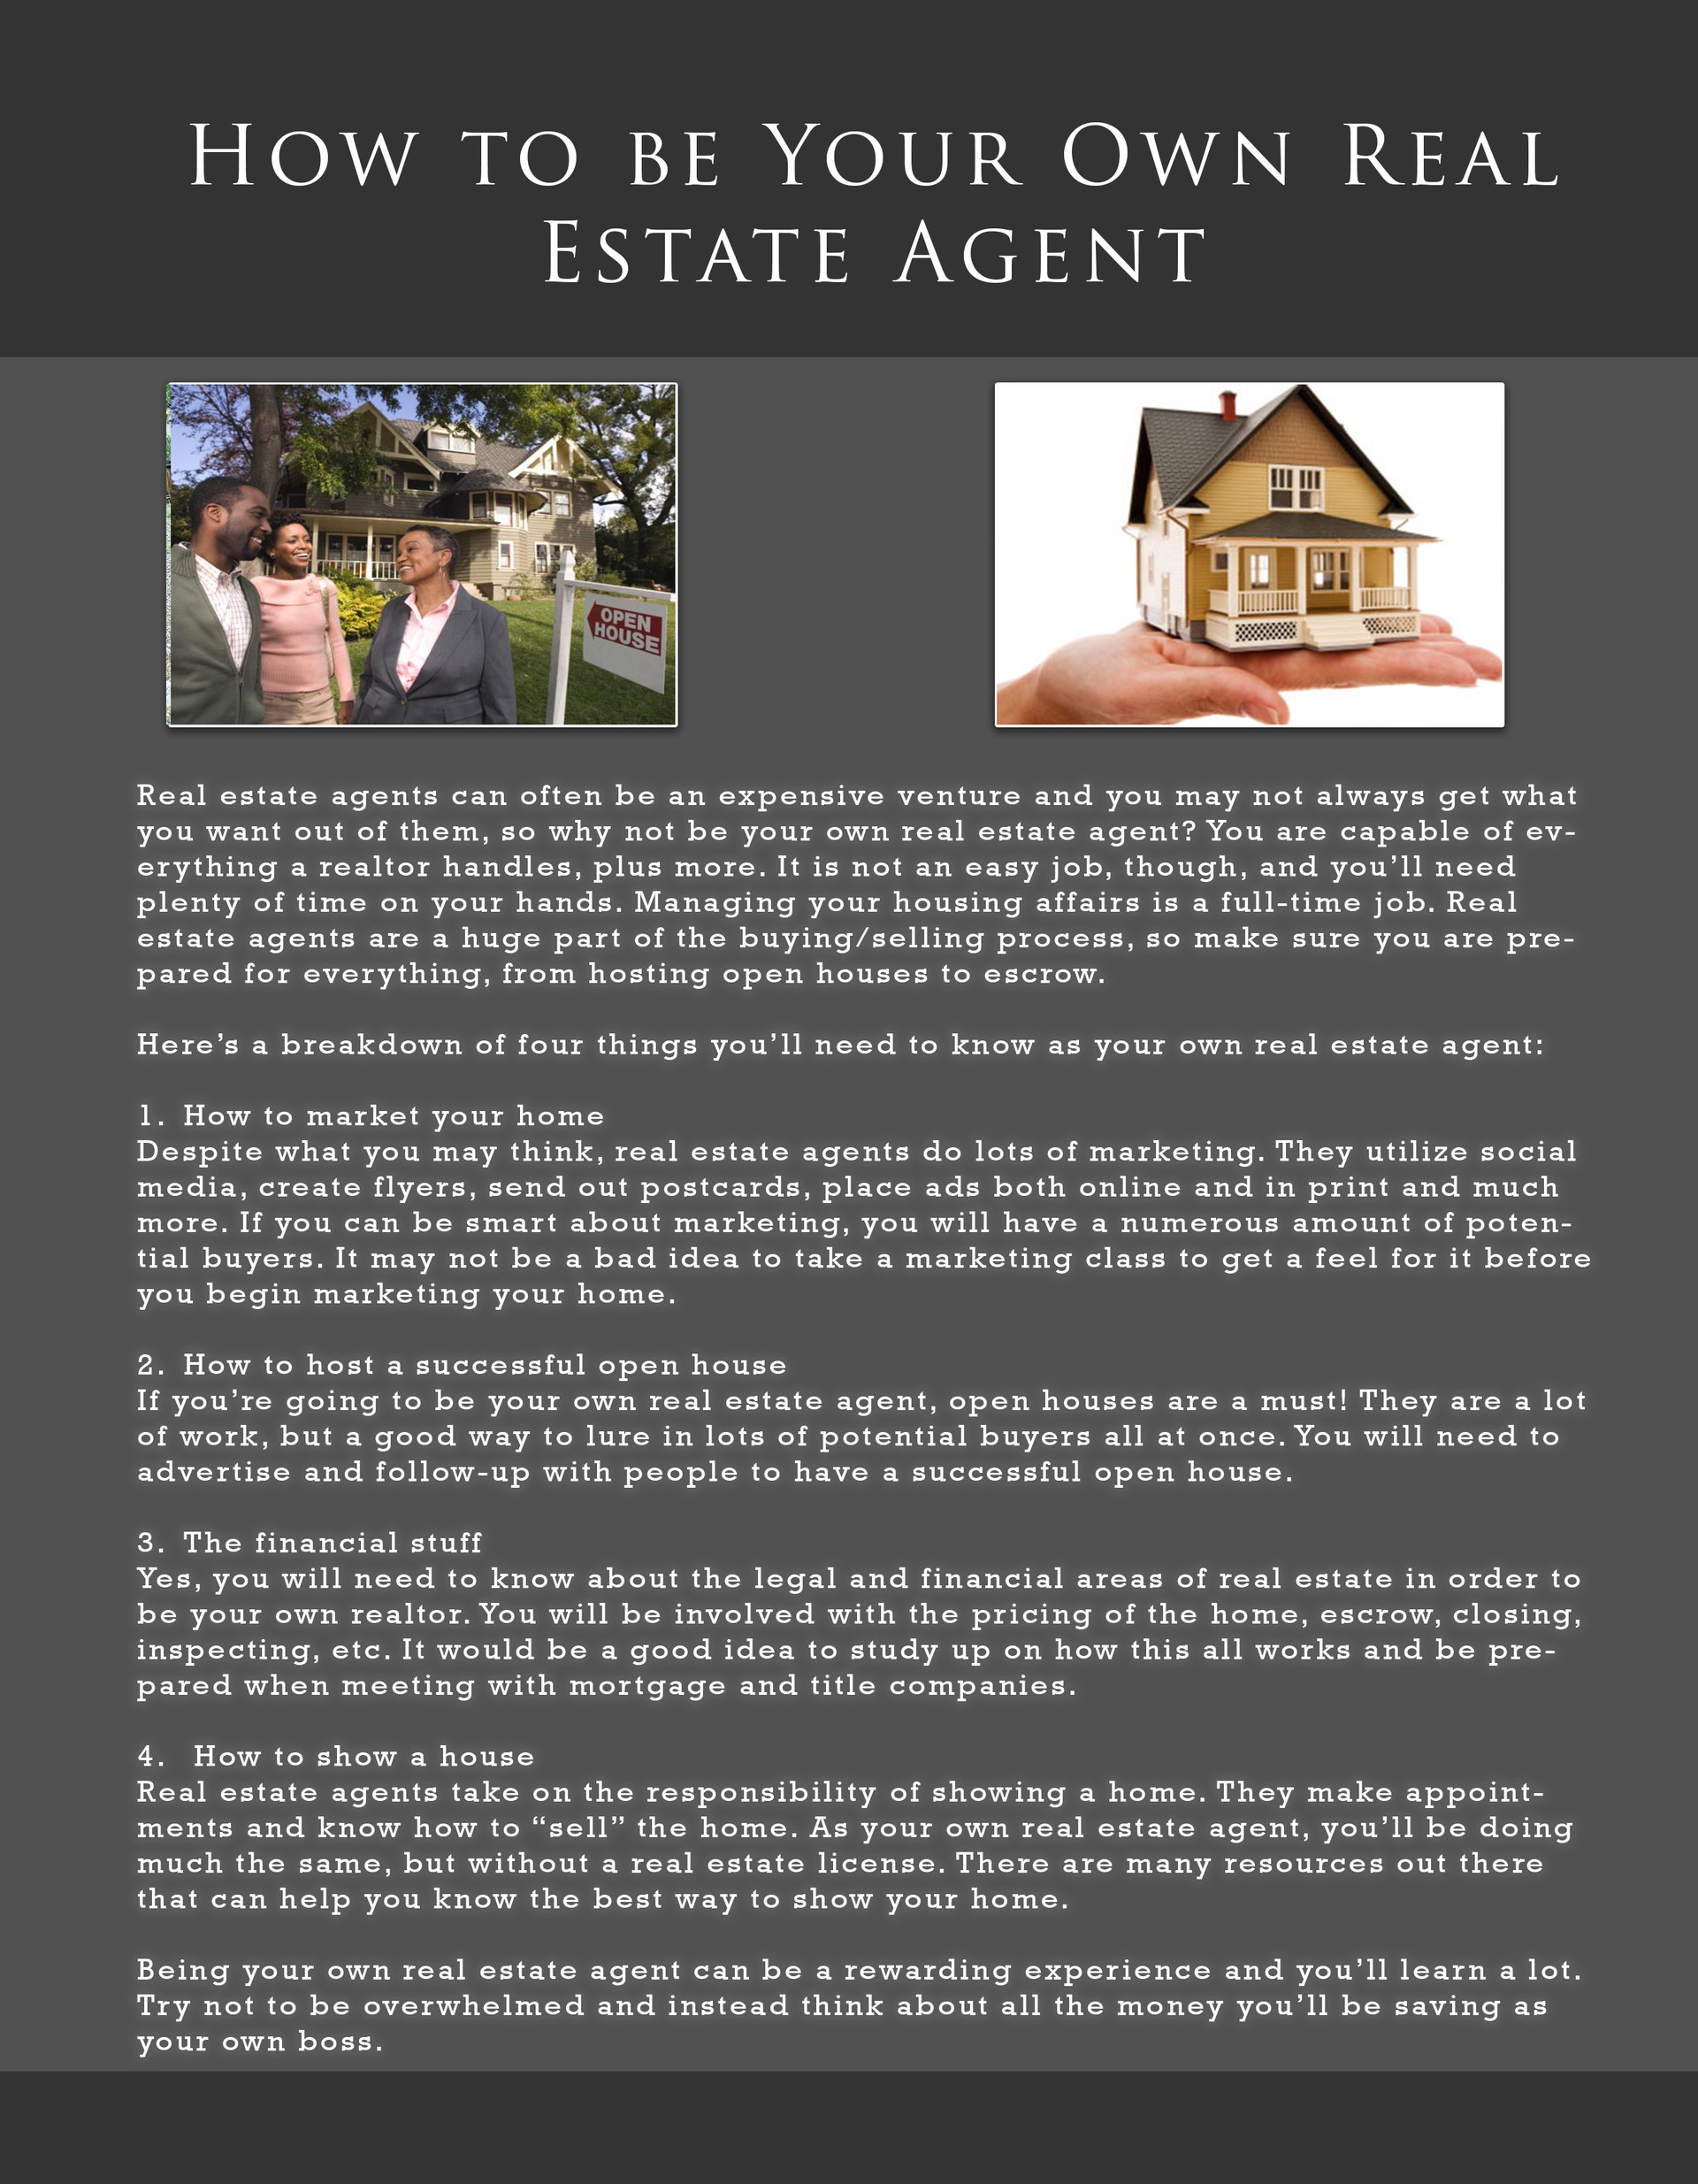 How to Do Your Own Real Estate Closing recommend